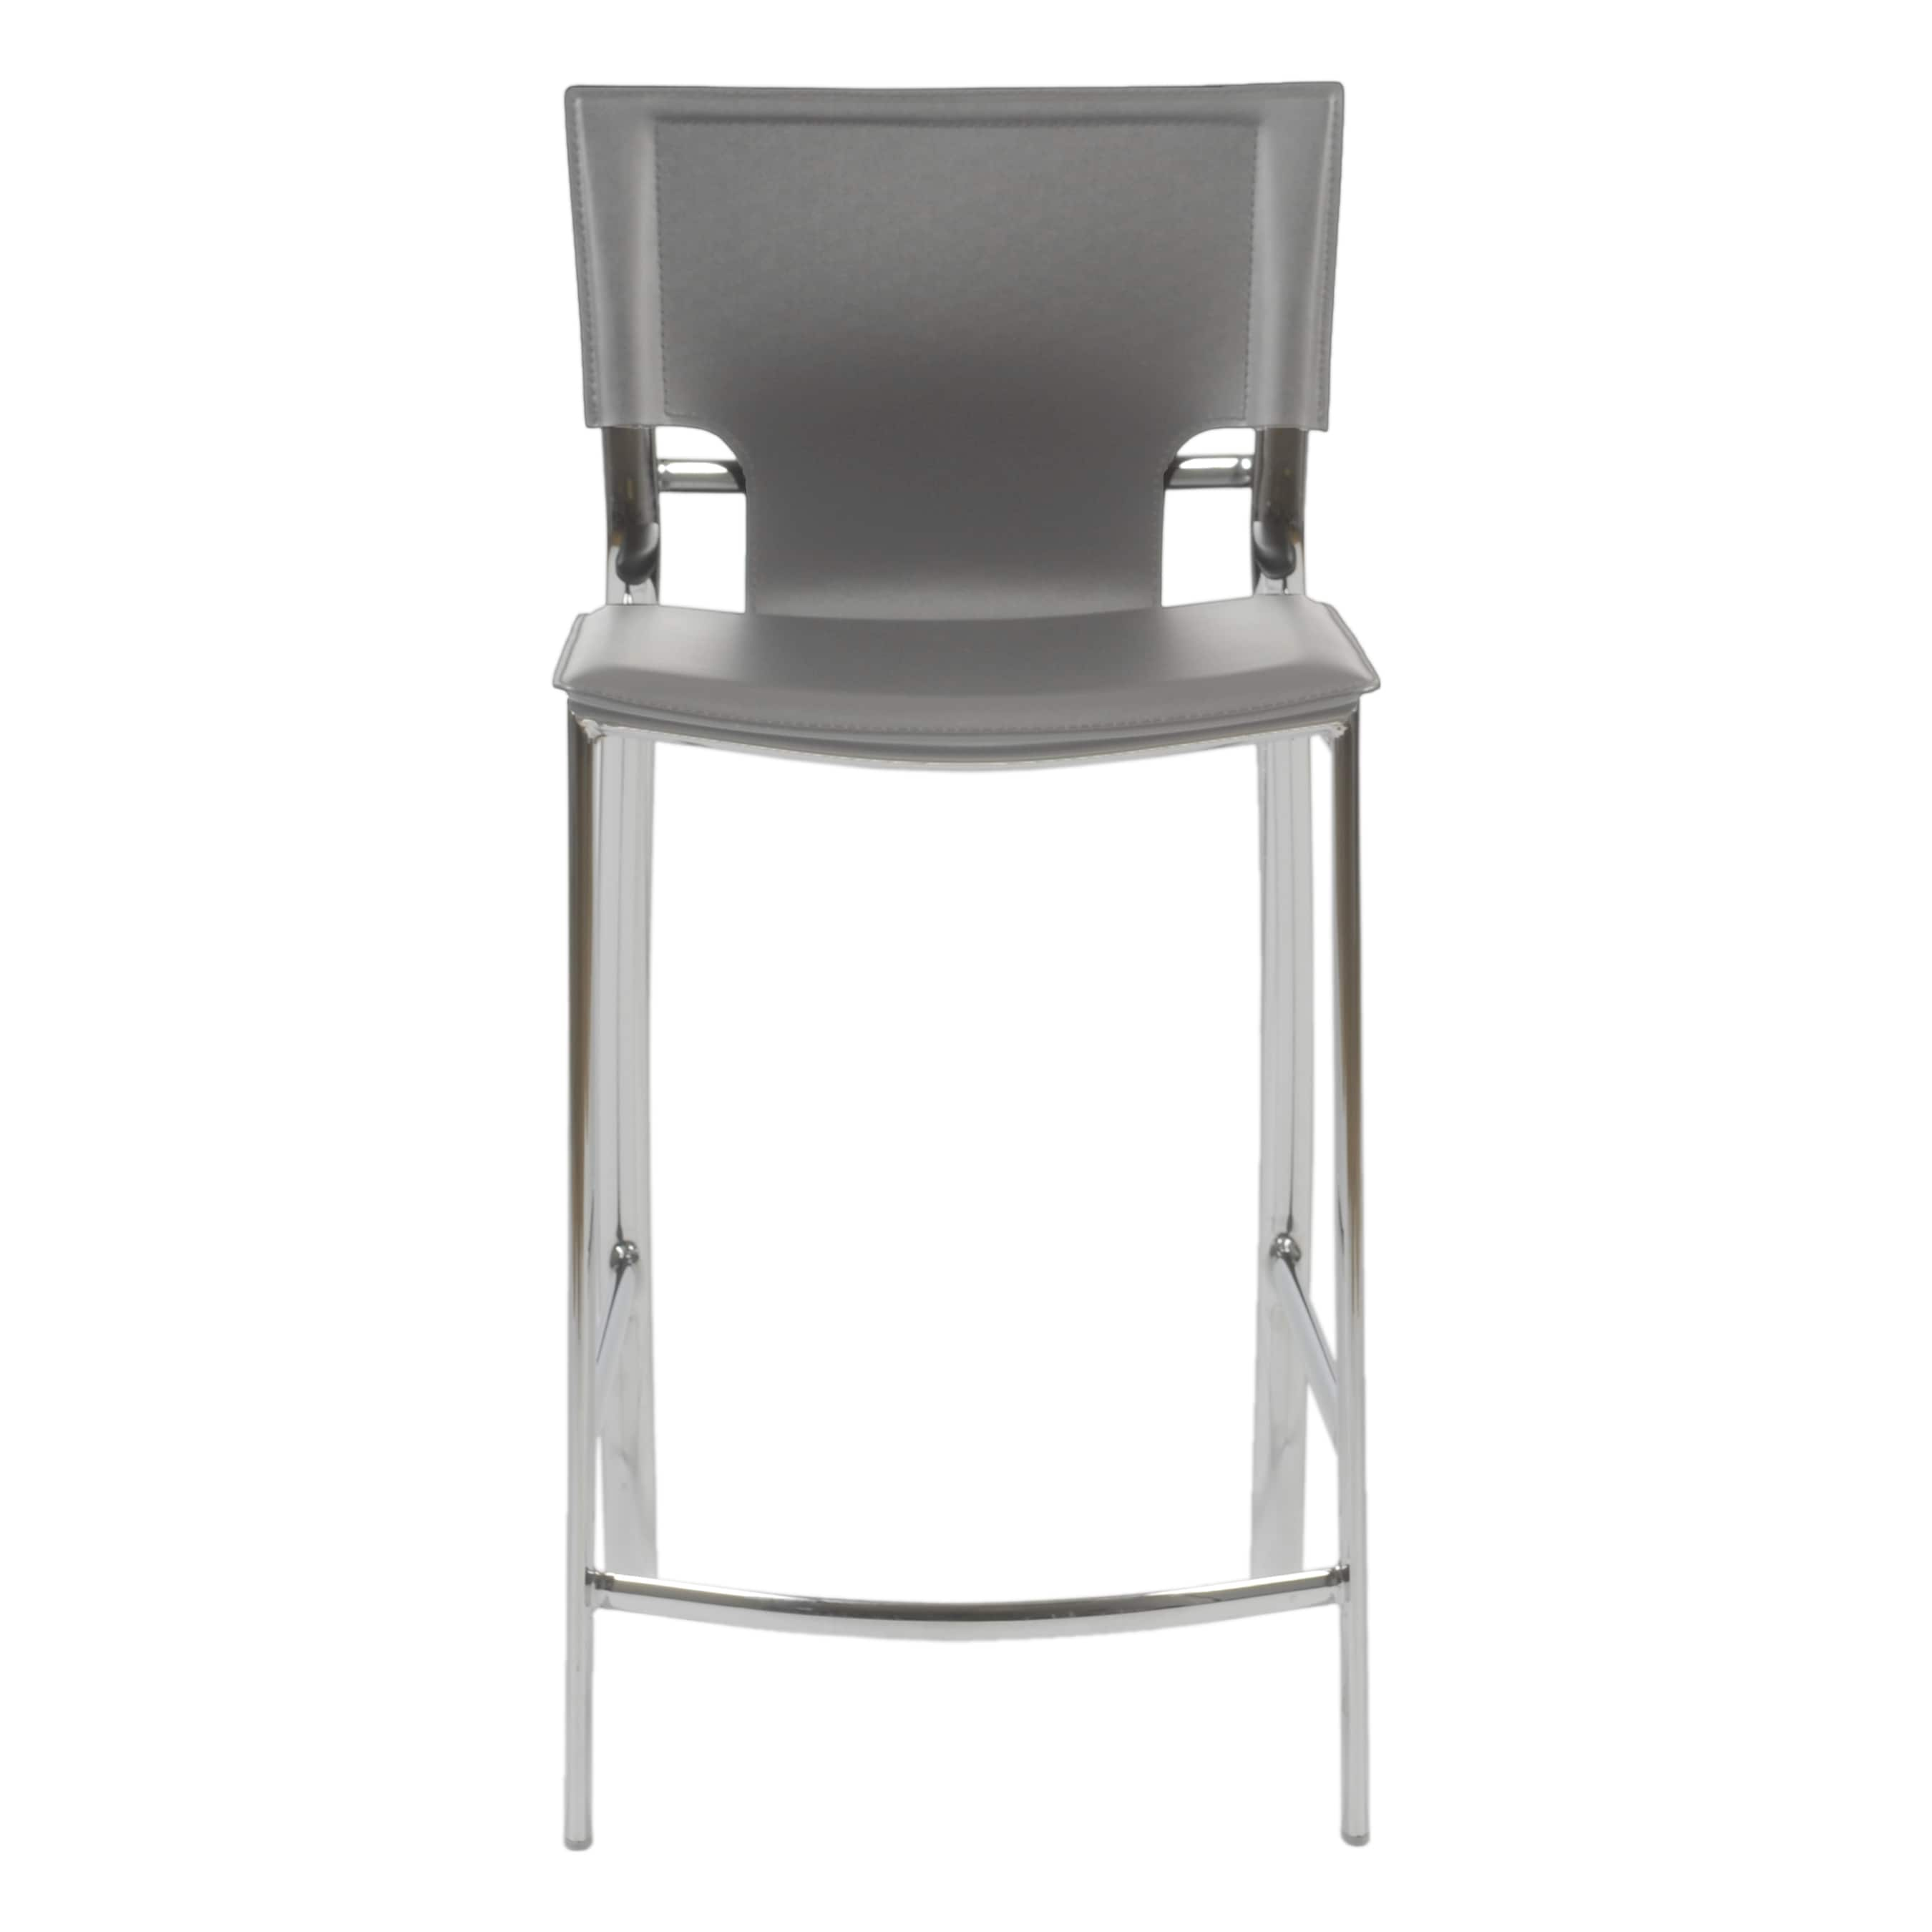 Vinnie C Counter Stool In Gray With Chrome Legs Set Of 2 Free Shipping Today 19749351